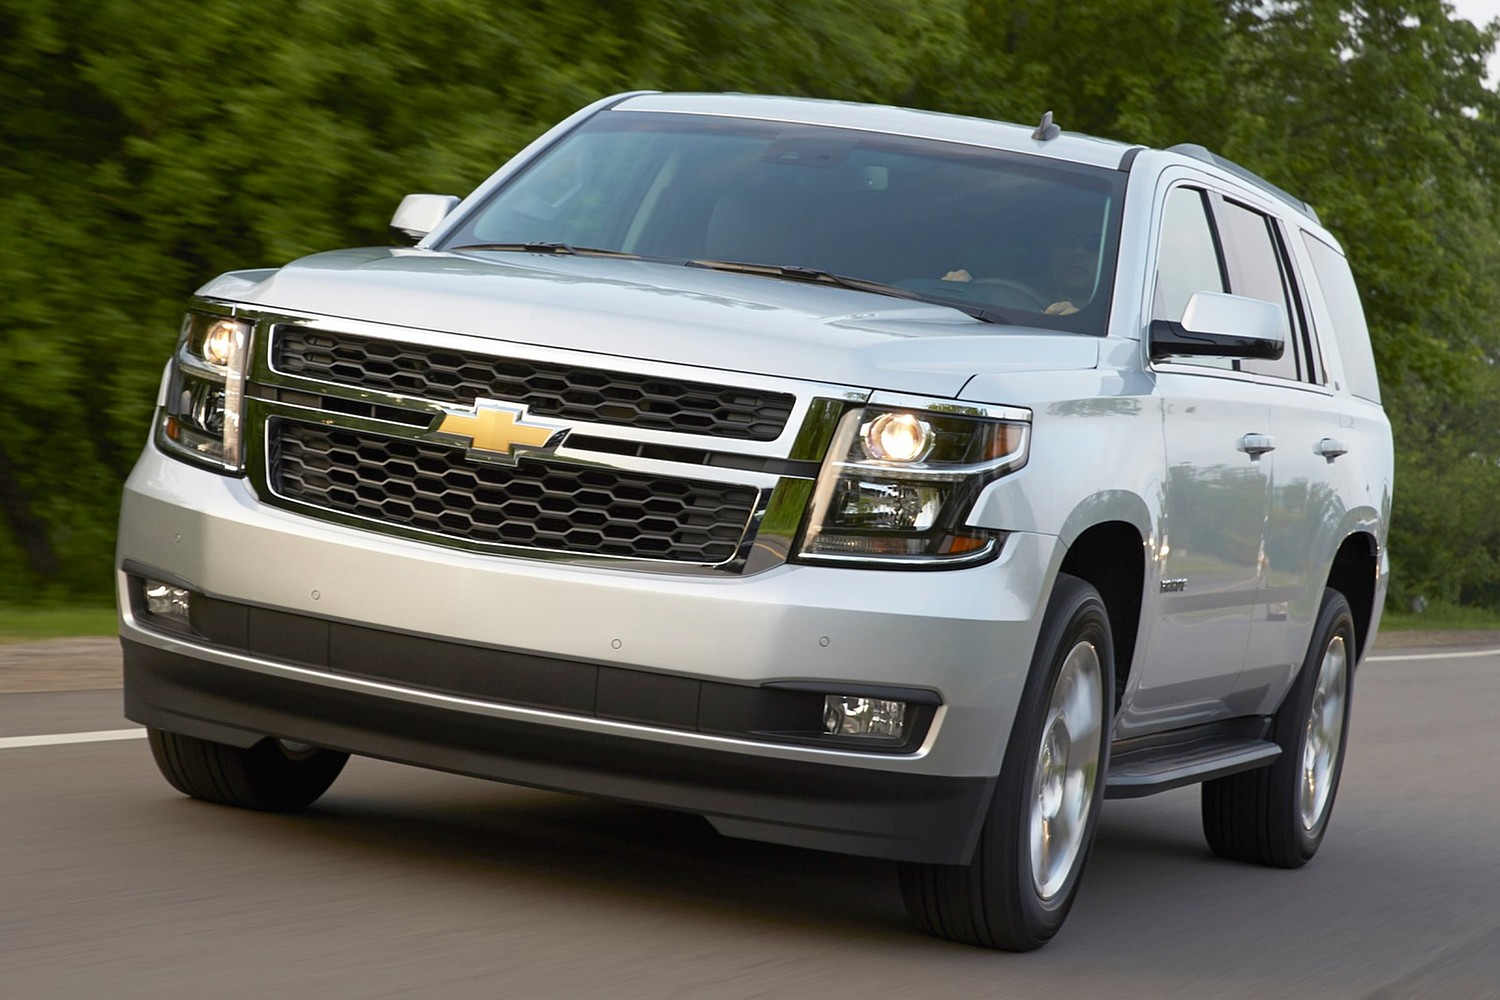 2016 Chevrolet Tahoe LT 4dr SUV Exterior. Luxury Package Shown.